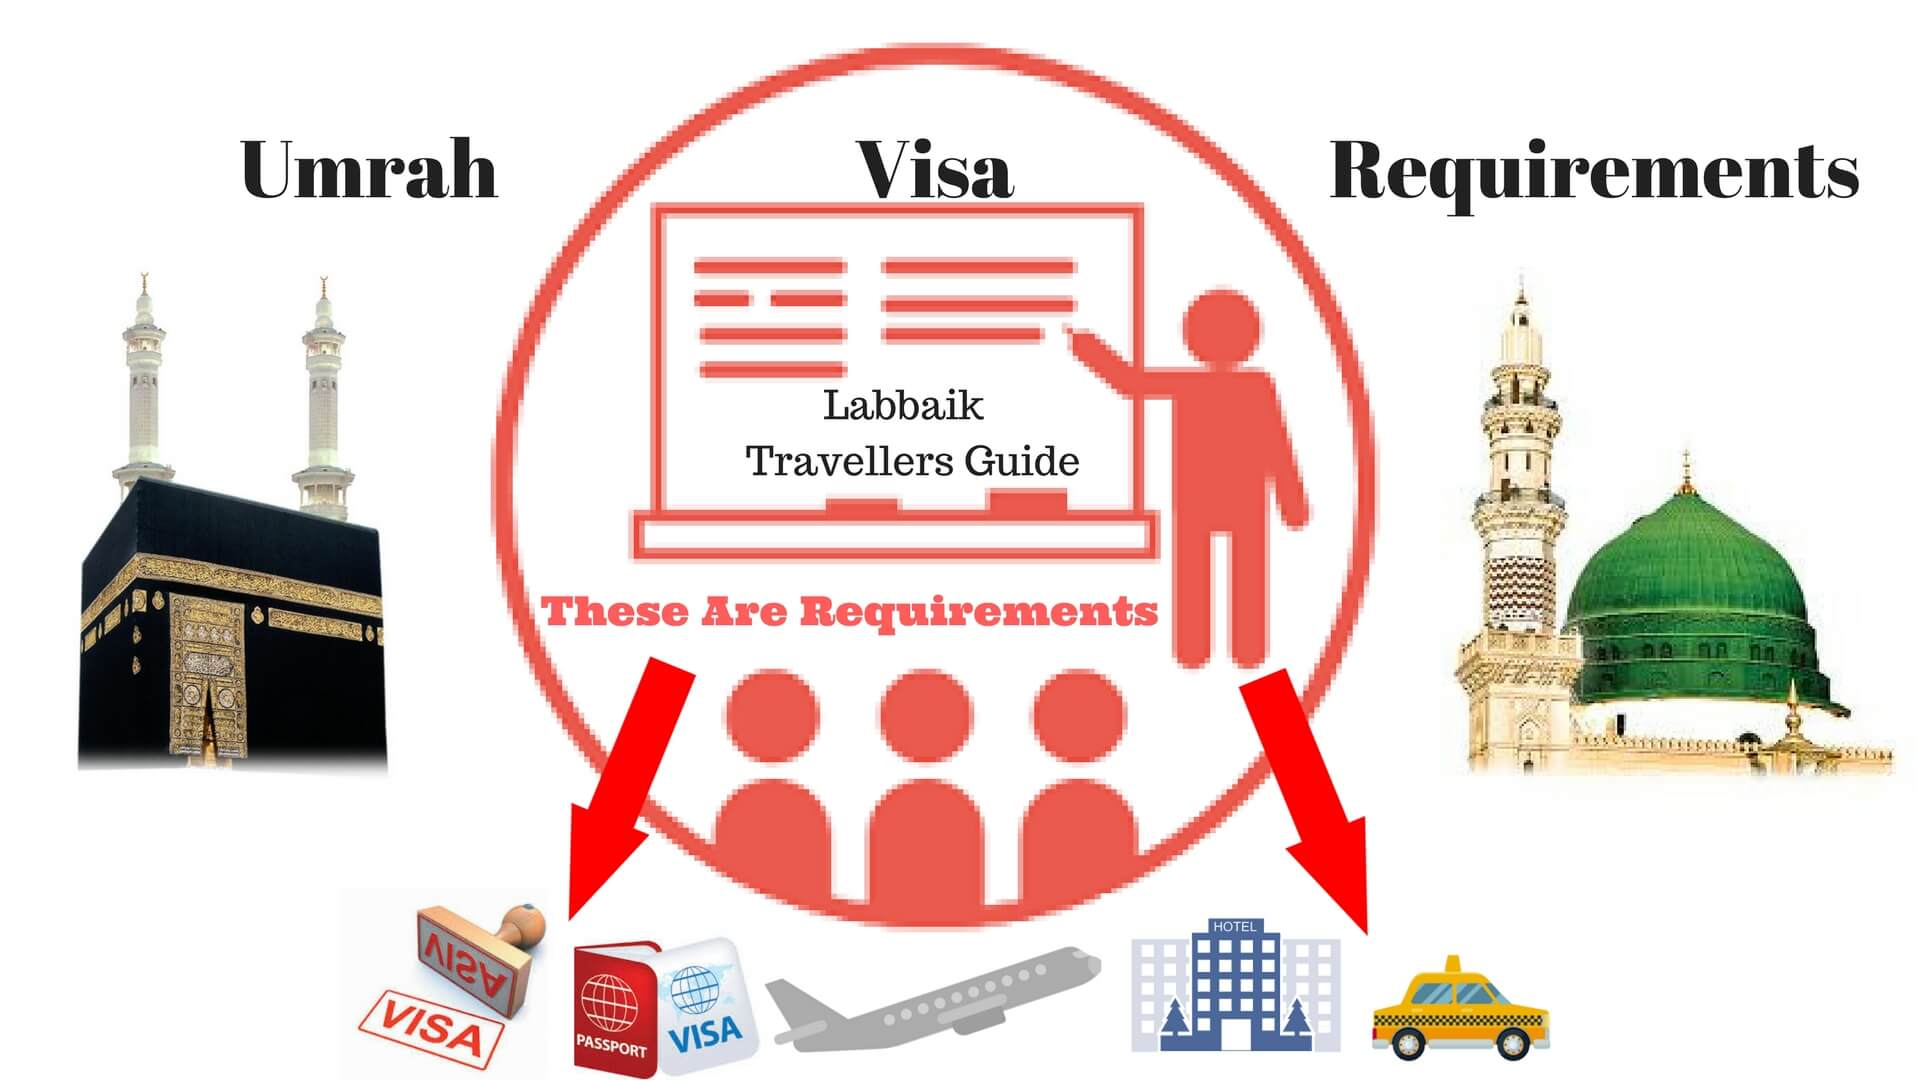 These are the requirements of Saudi Visa